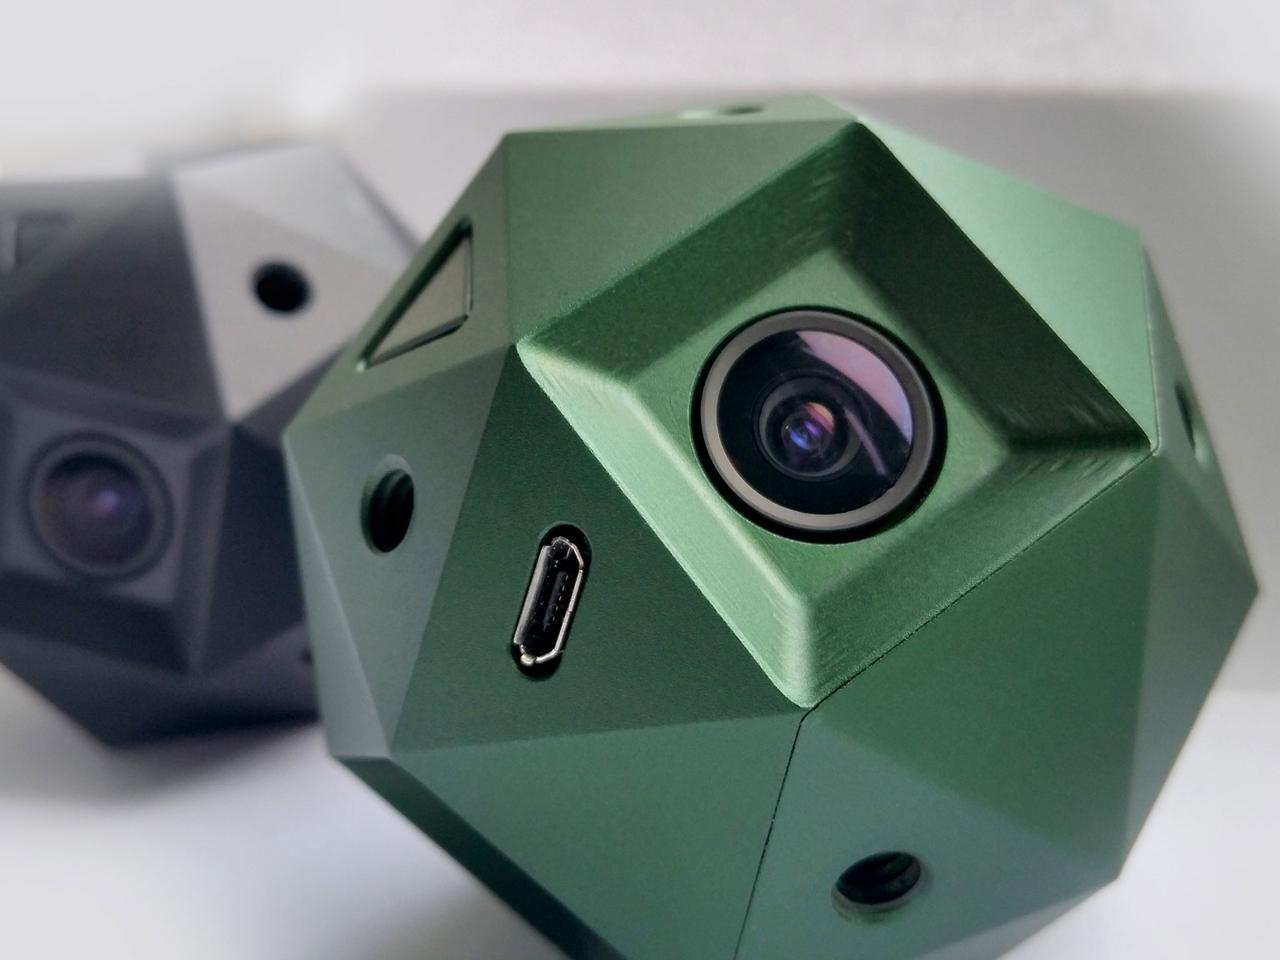 The Sphericam 2 weighs is 65 mm (2.6 in) in diameter, weighs under 400 g (14.1 oz) and houses six cameras inside an anodized aluminum body